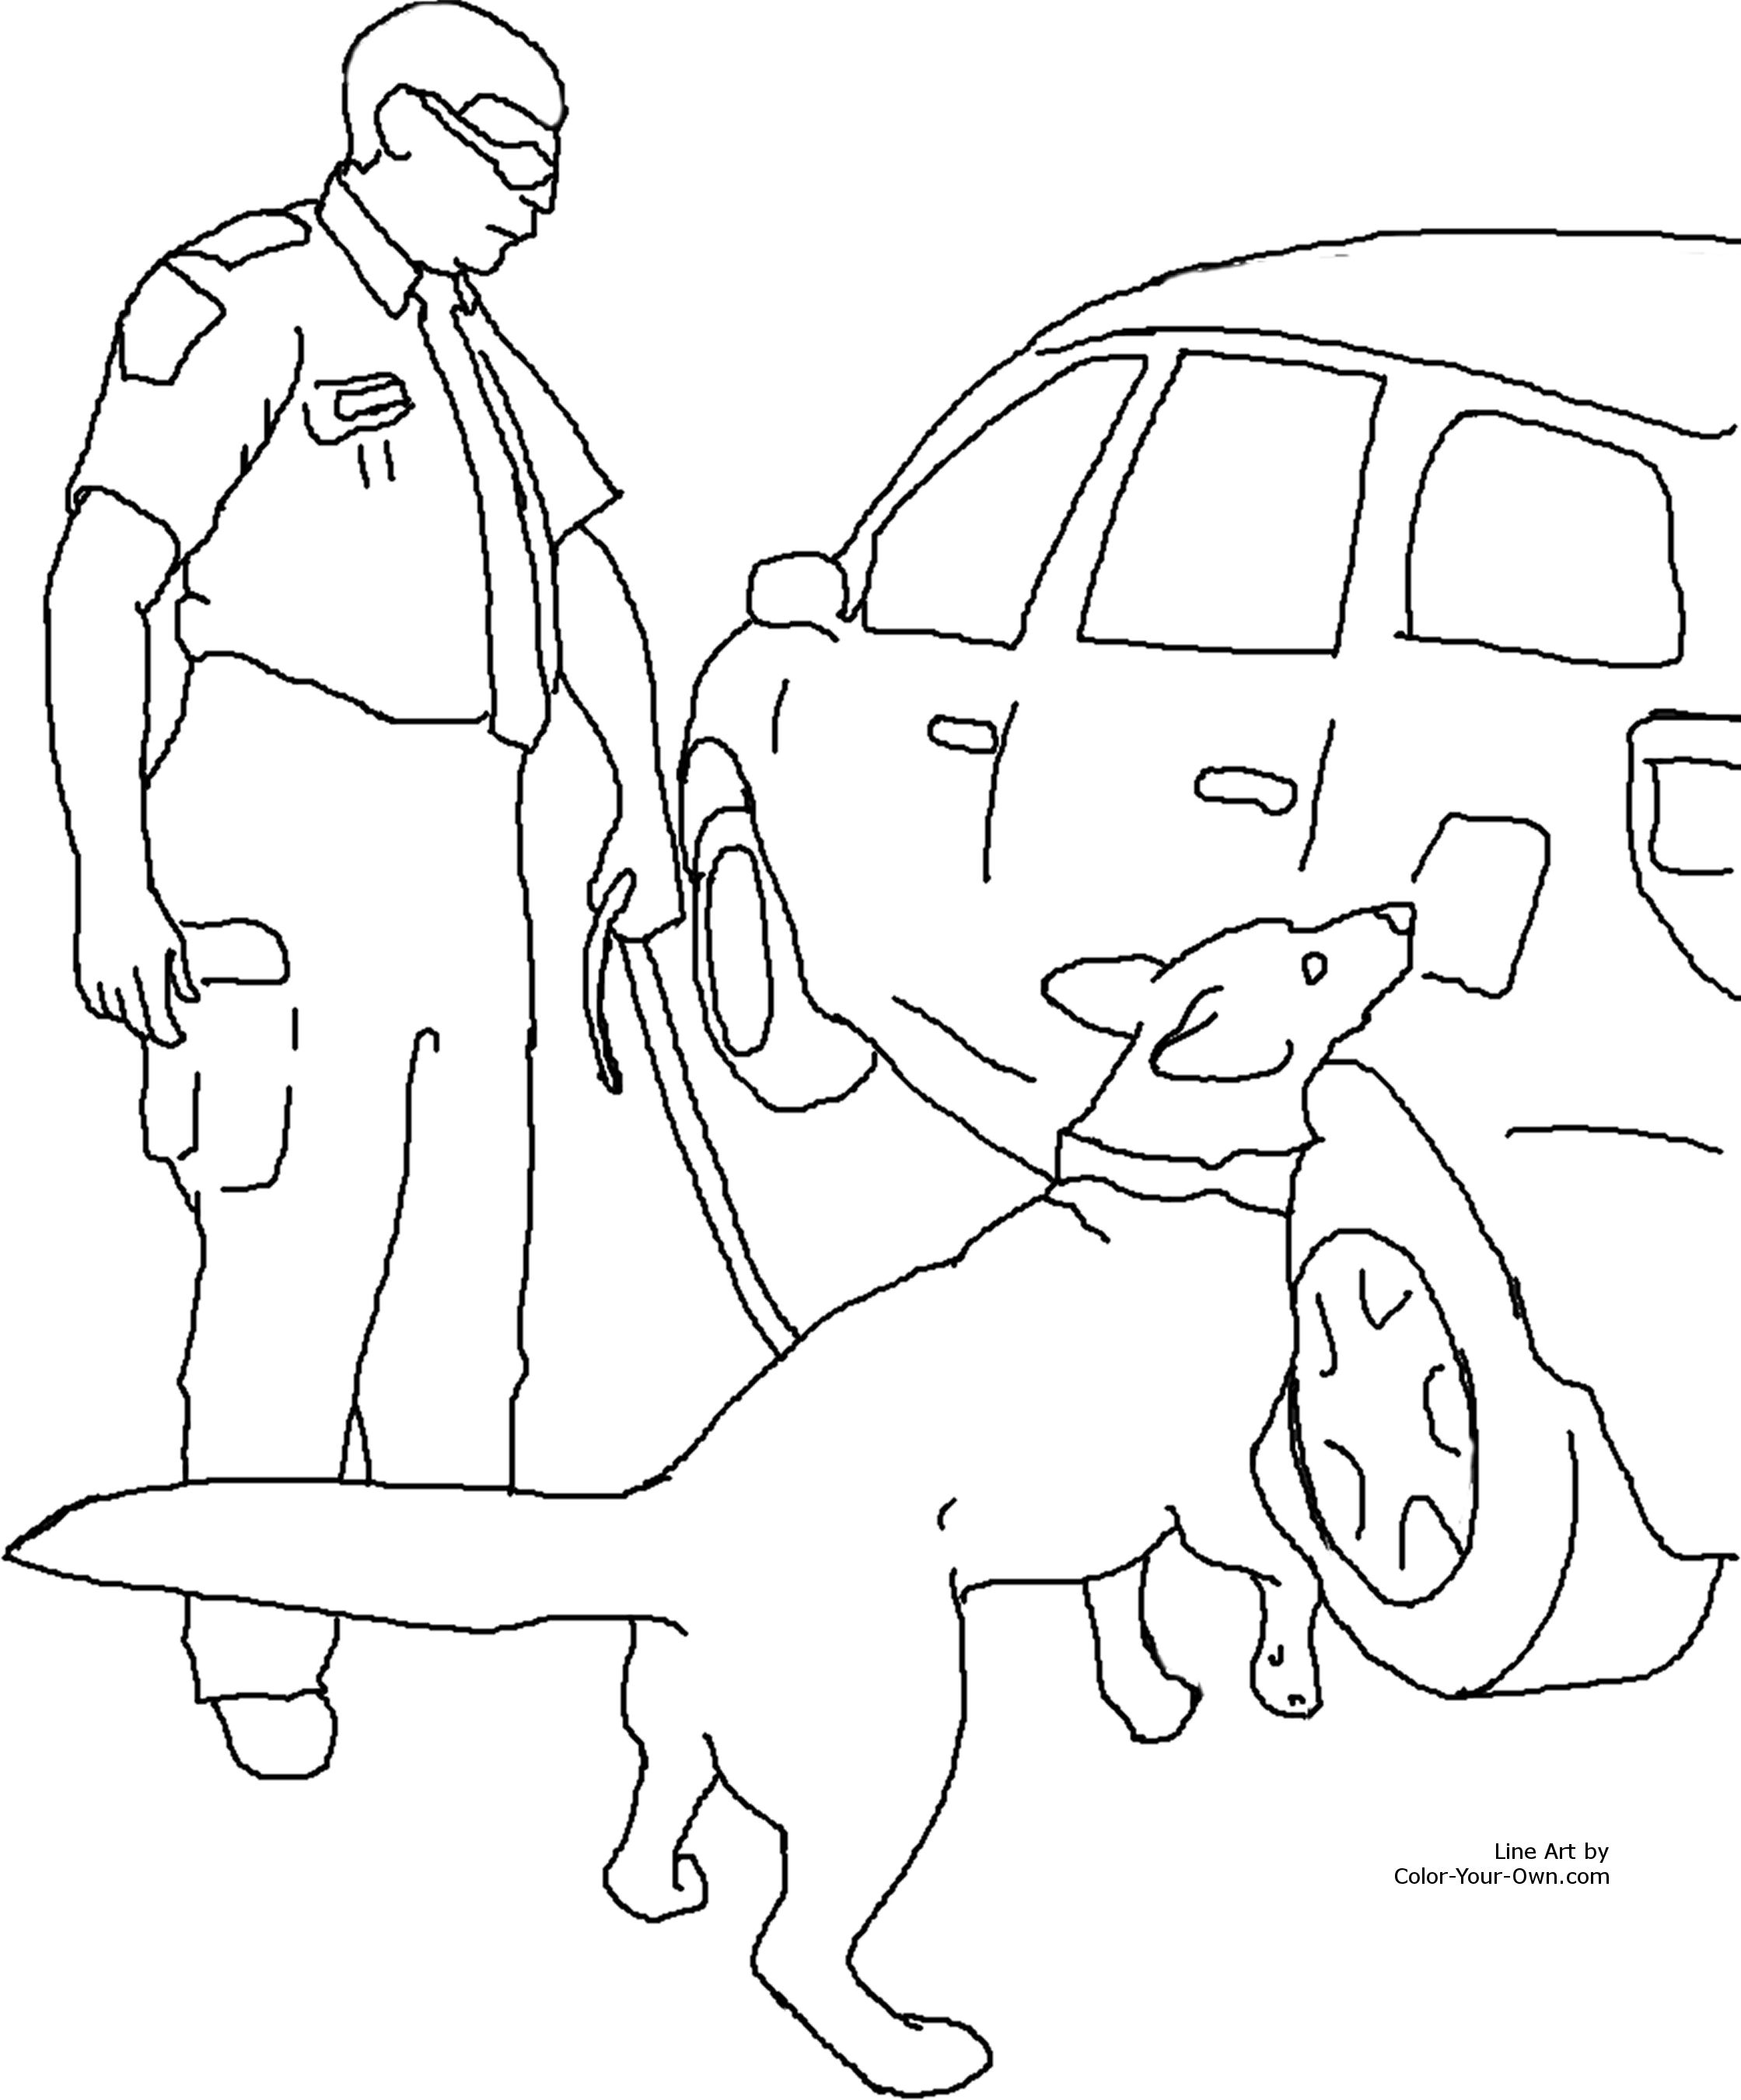 free printable coloring pages and line art part 8